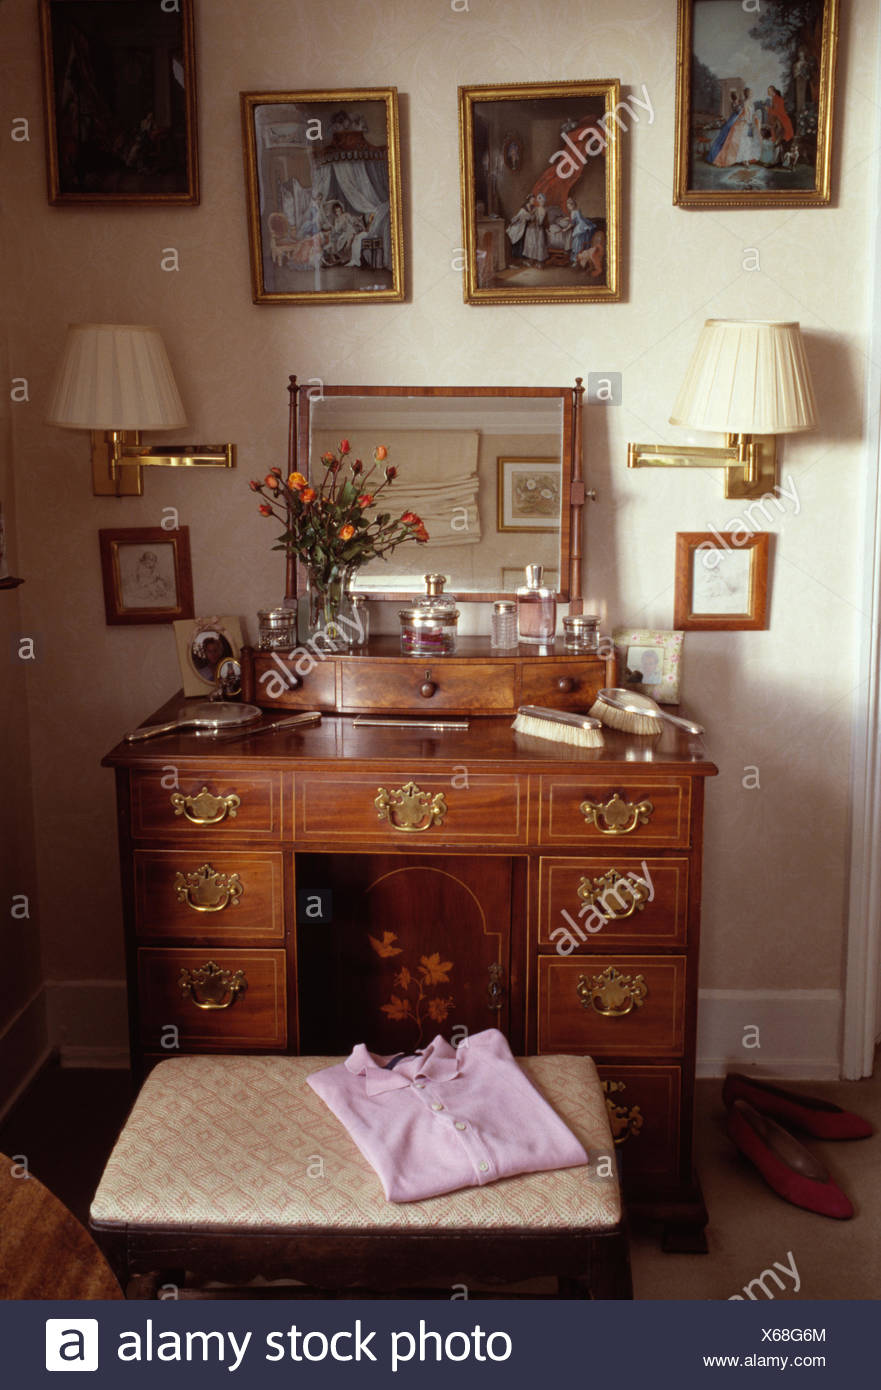 Pictures And Brass Wall Lights Above Antique Dressing Table And Stool In Cottage Bedroom Stock Photo Alamy